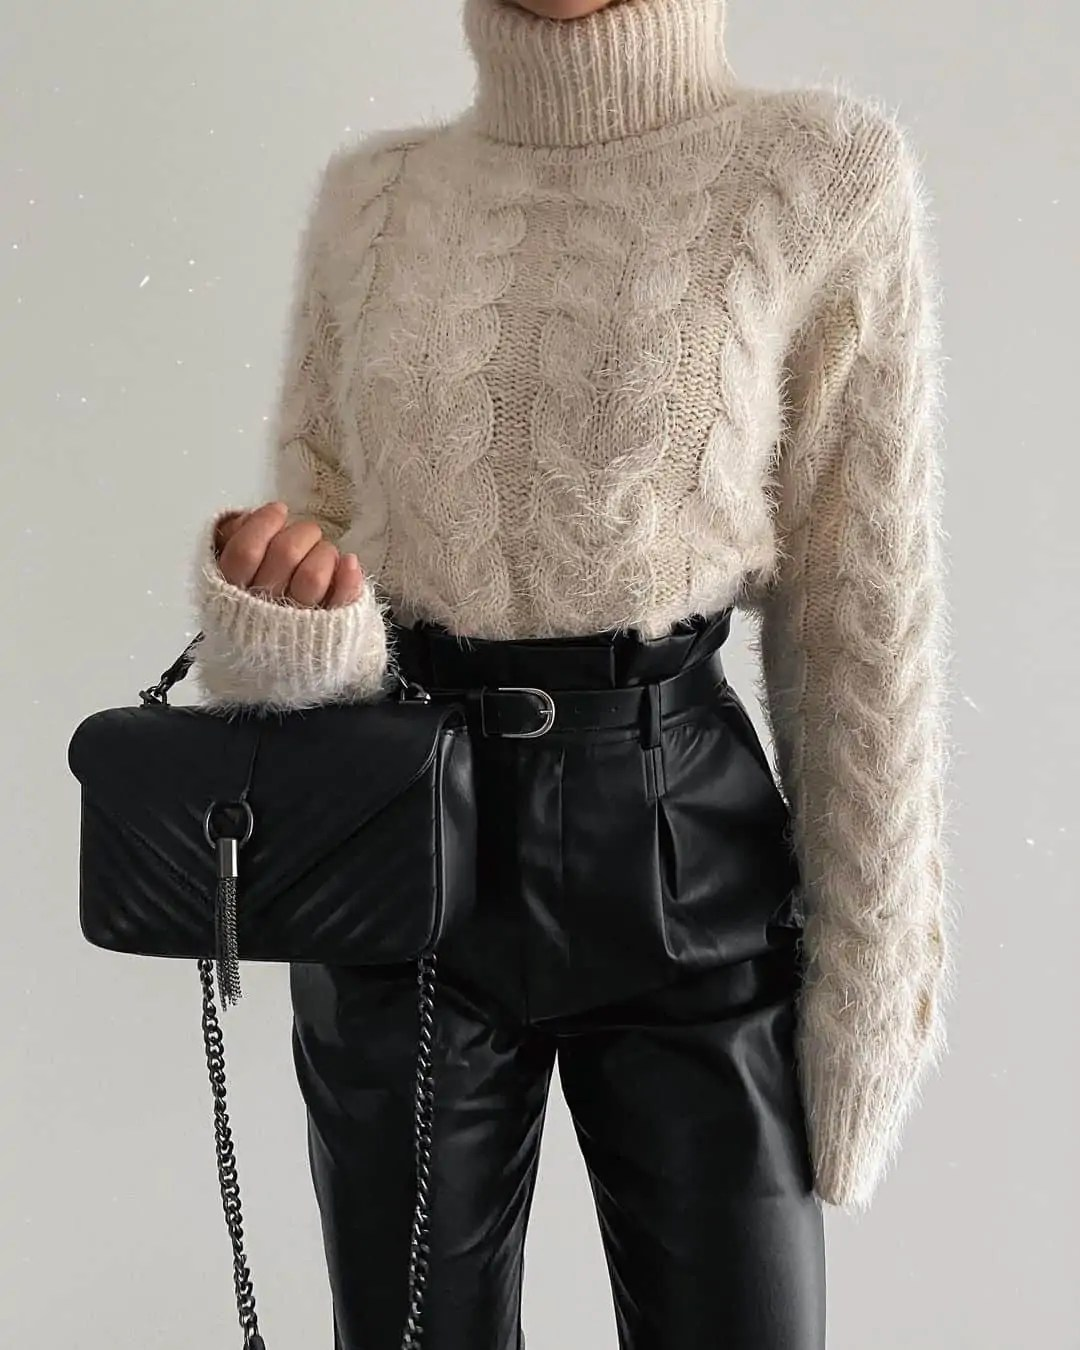 100+ Outfits to Inspire your next shopping haul 273